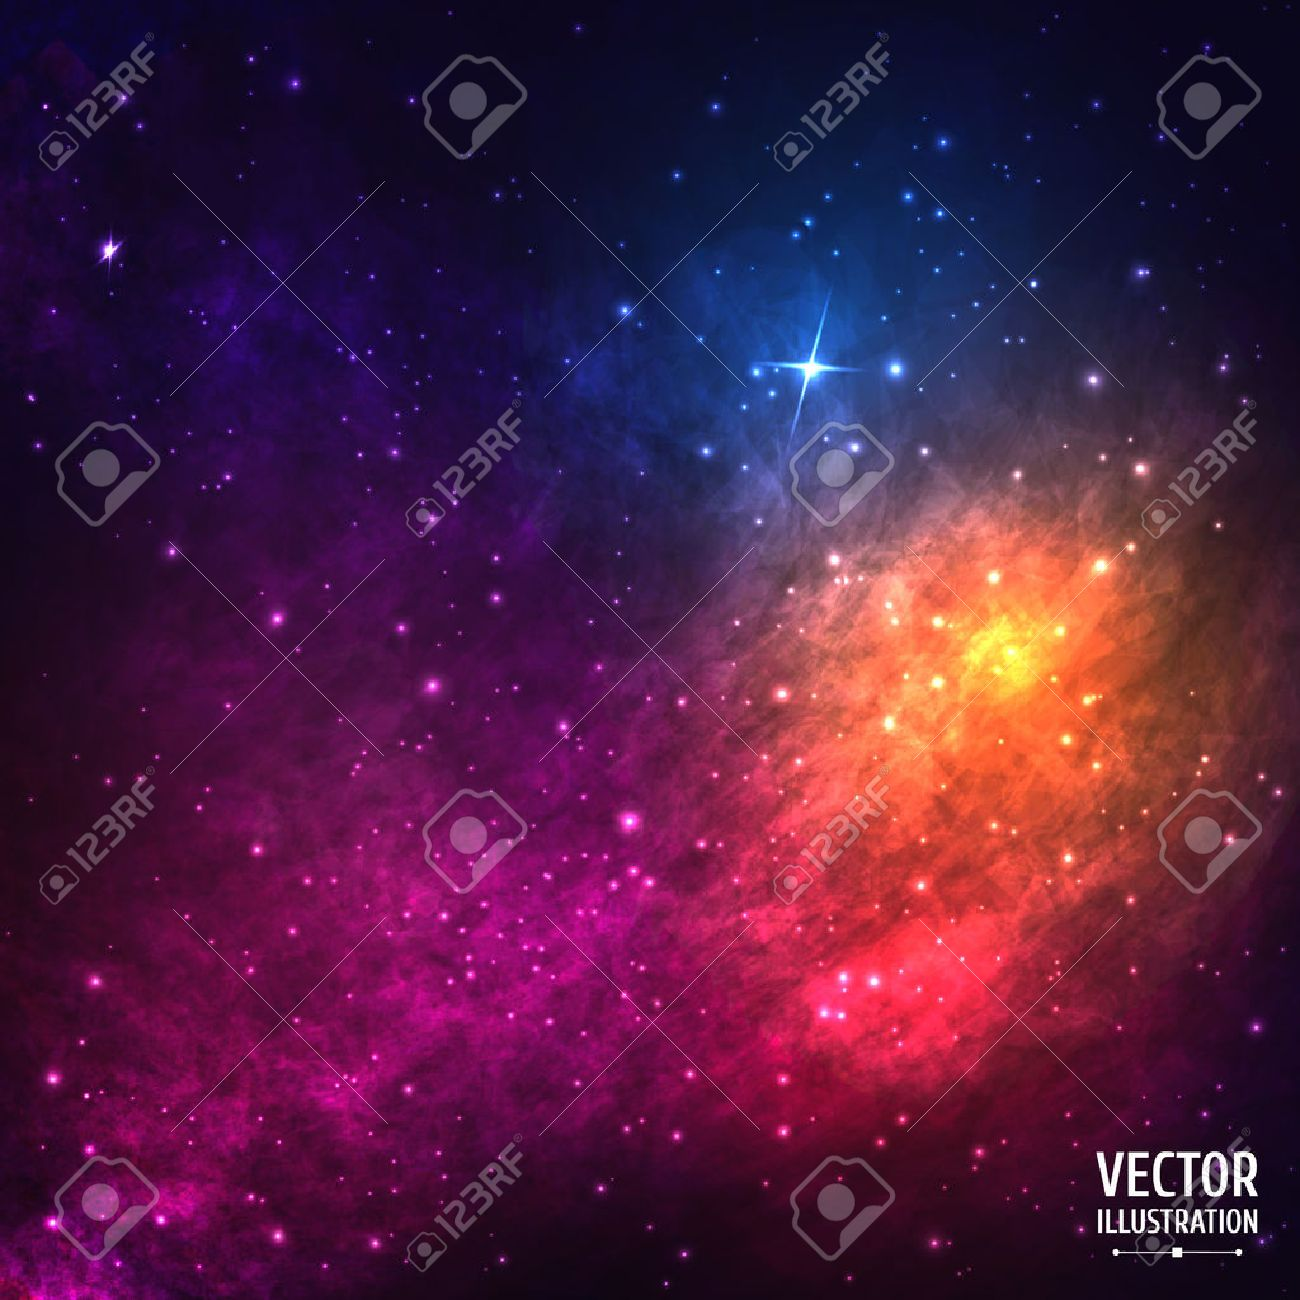 Colorful Cosmic Background with Light, Shining Stars, Stardust and Nebula. Vector Illustration for artwork, party flyers, posters, banners - 40843131